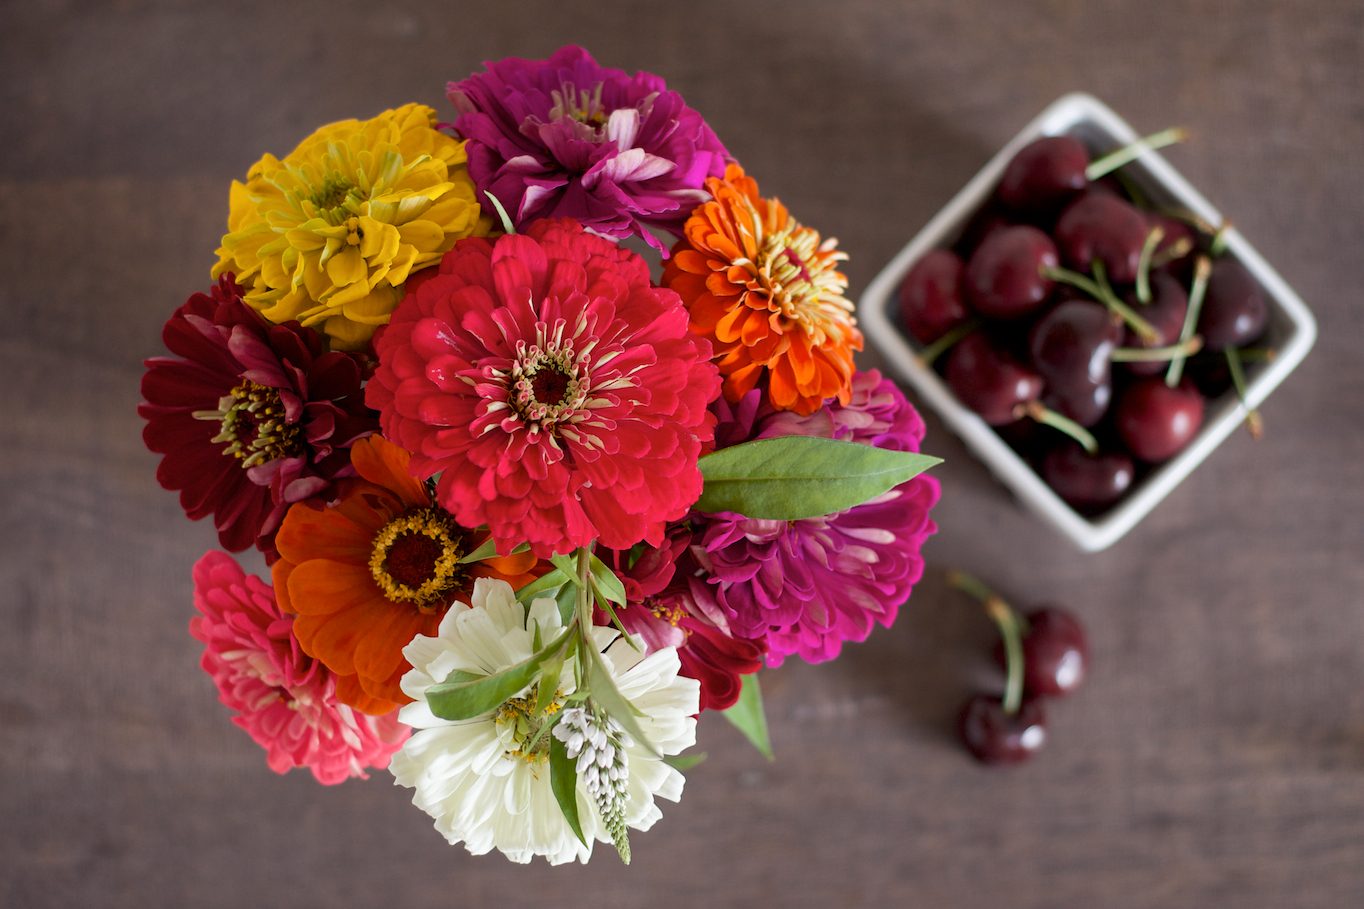 Zinnias and Cherries